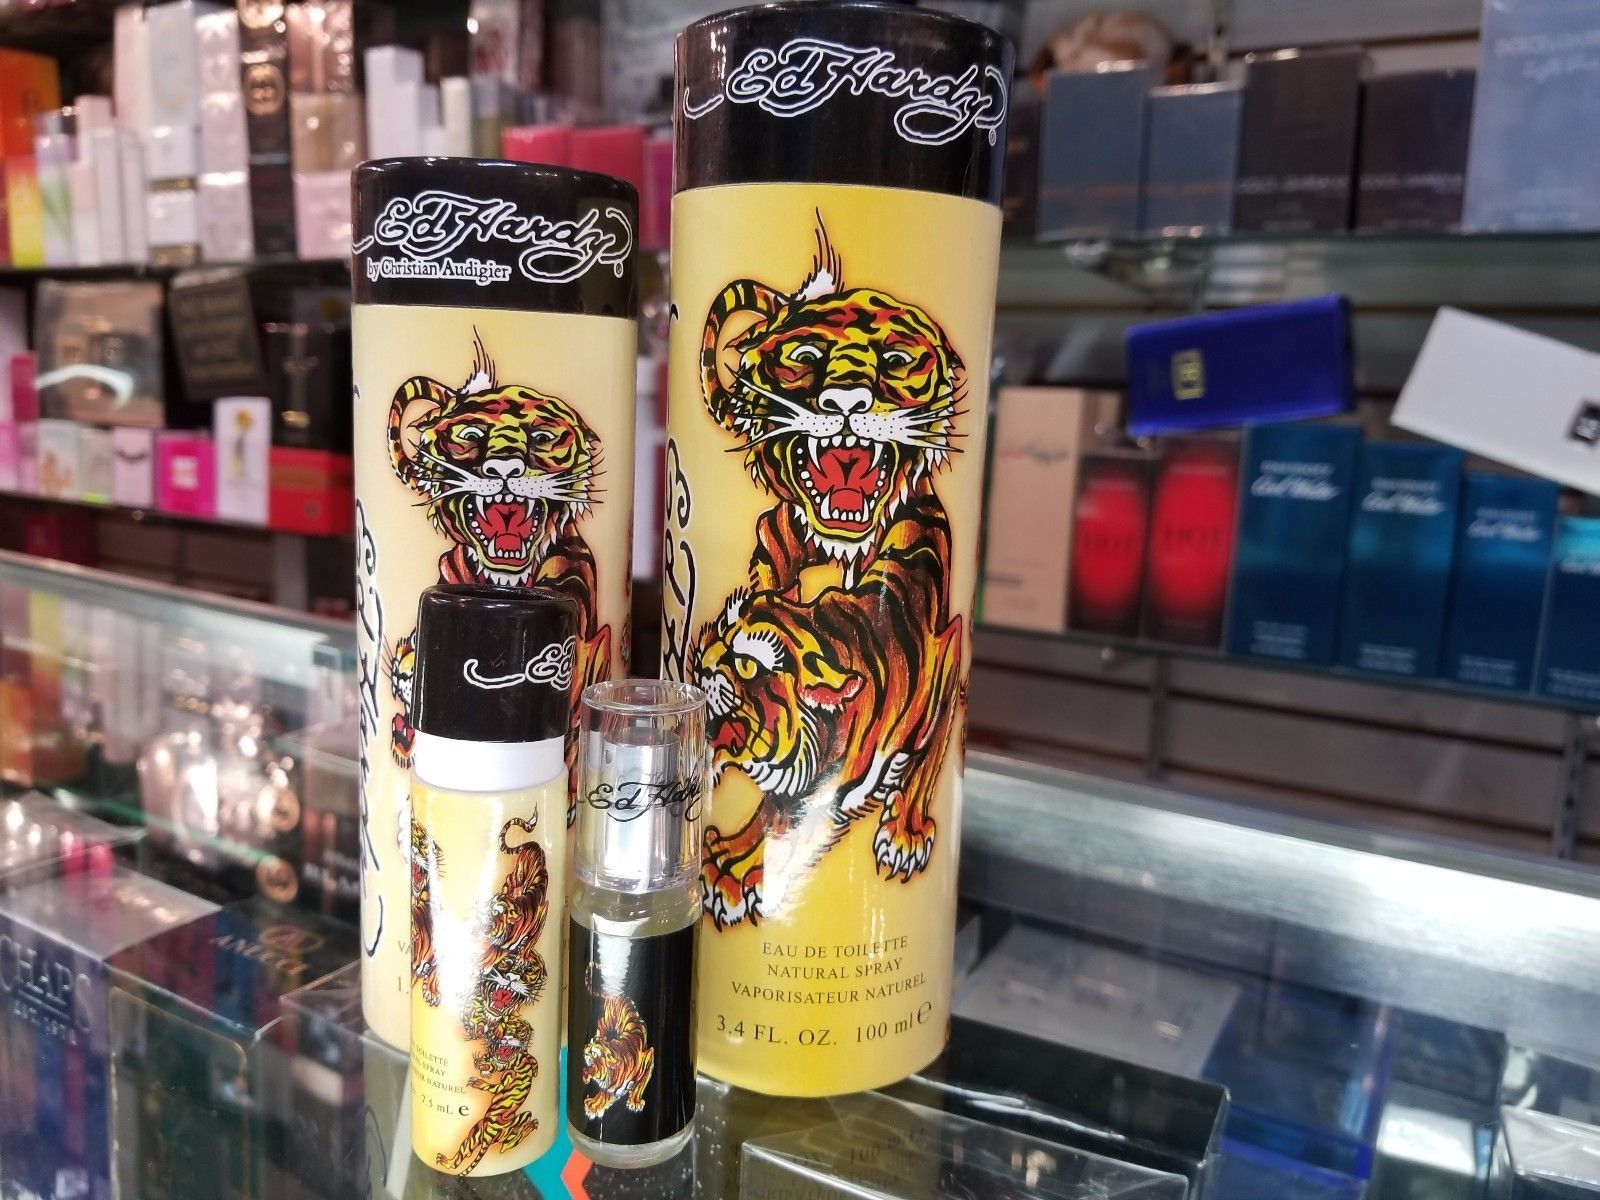 ED HARDY by Christian Audigier .25 1.7 3.4 oz for Men Cologne BRAND NEW IN CAN - $30.24 - $64.12